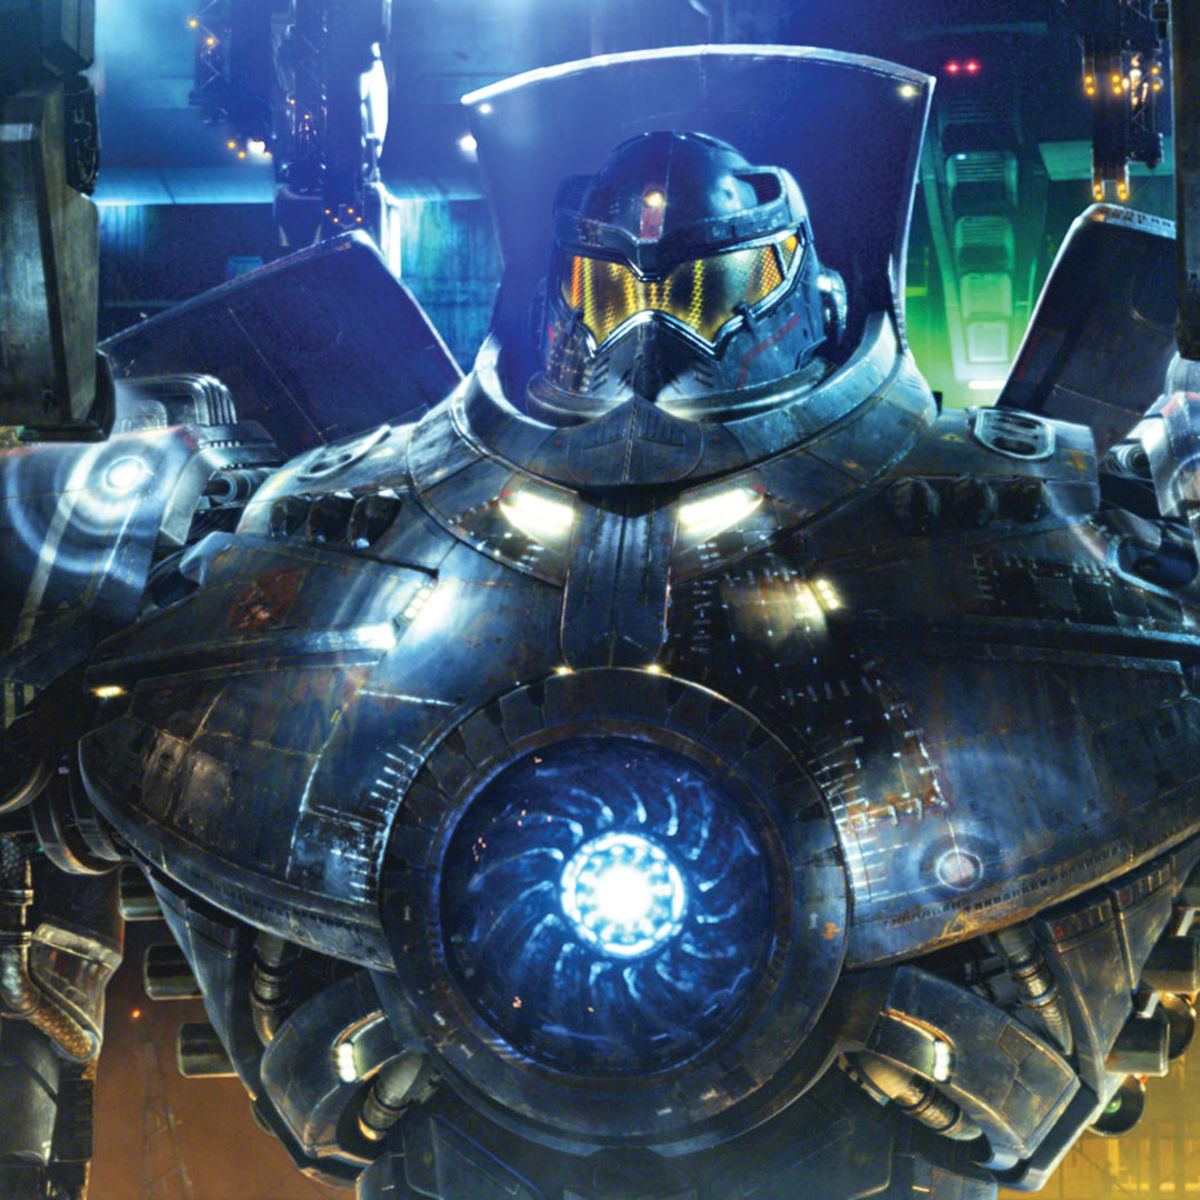 infinity jaeger artwork pacific rim jaeger the towering realworld science behind scifi and animes mecha